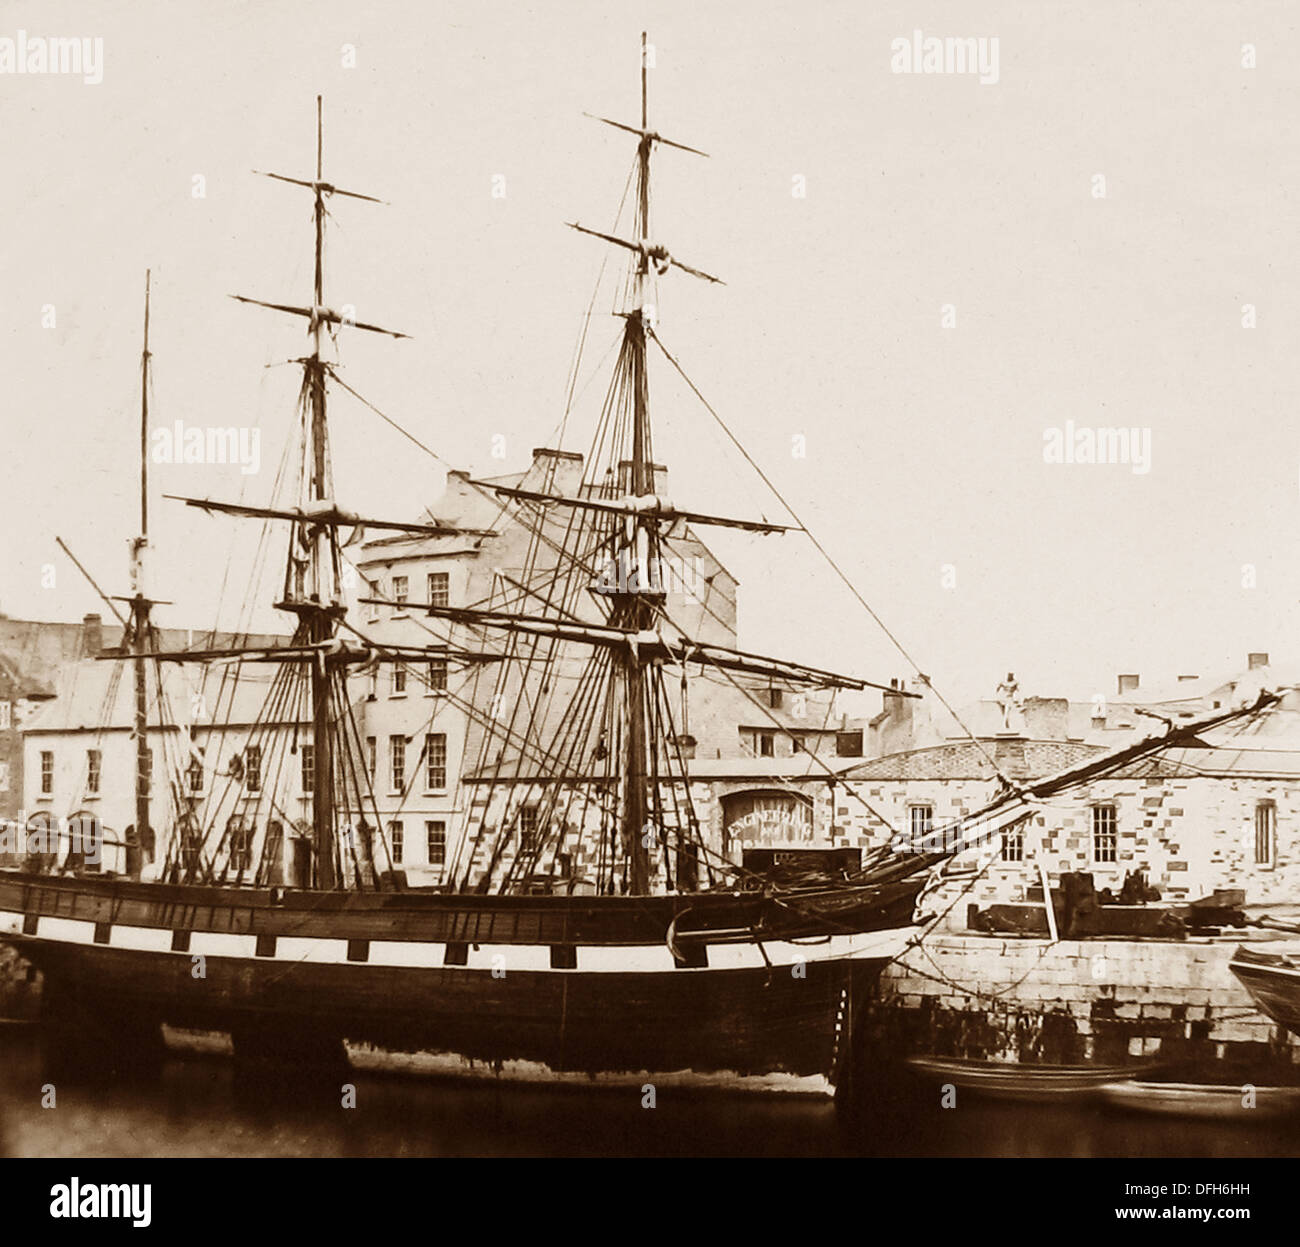 Cork Harbour - Hardy Sugar Barque - early 1900s - Stock Image